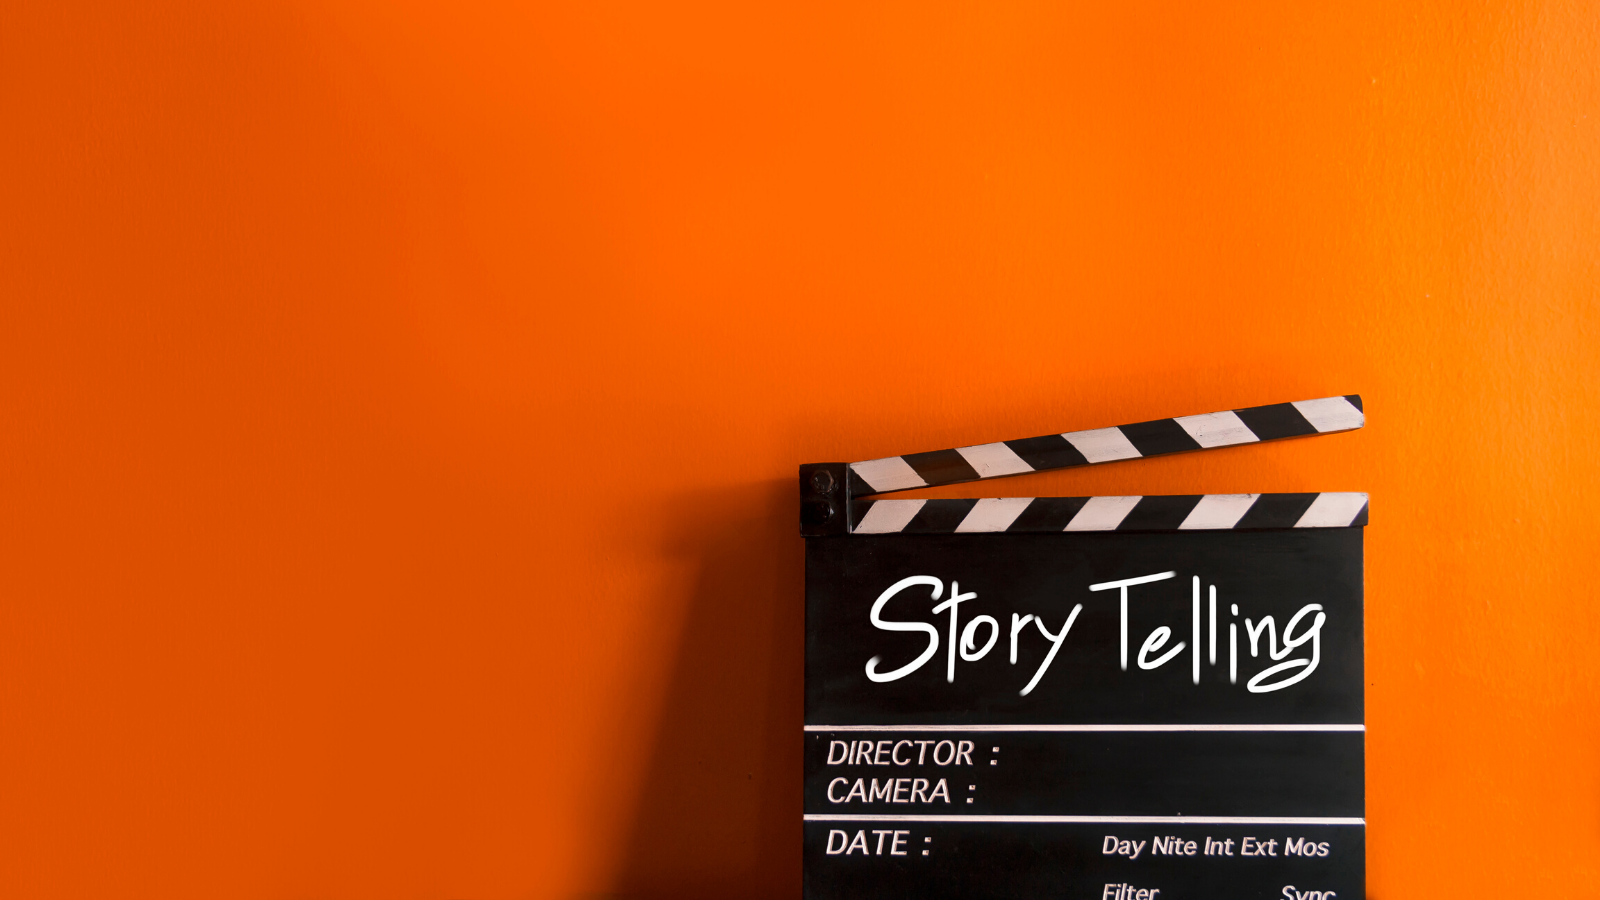 Visual Storytelling: Building a Brand Through Art Style